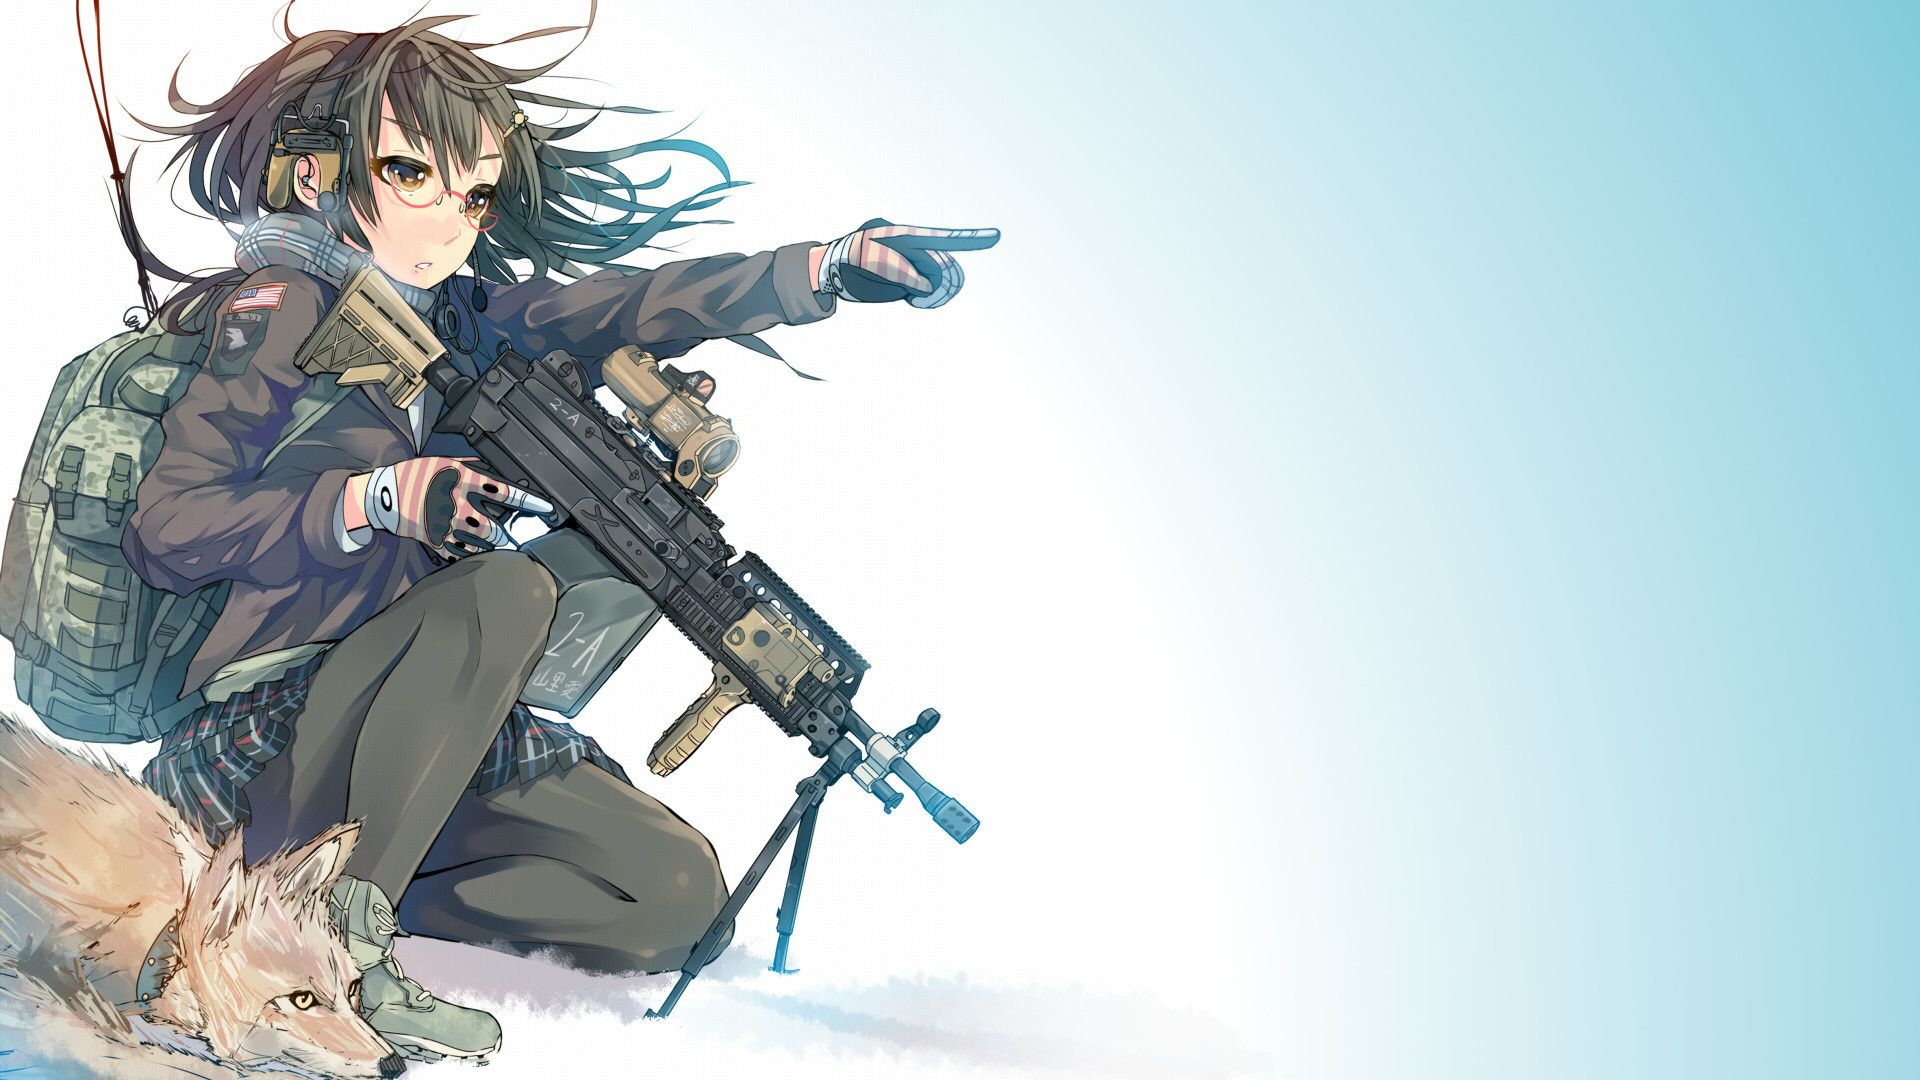 Anime Soldier Wallpapers - Top Free Anime Soldier Backgrounds